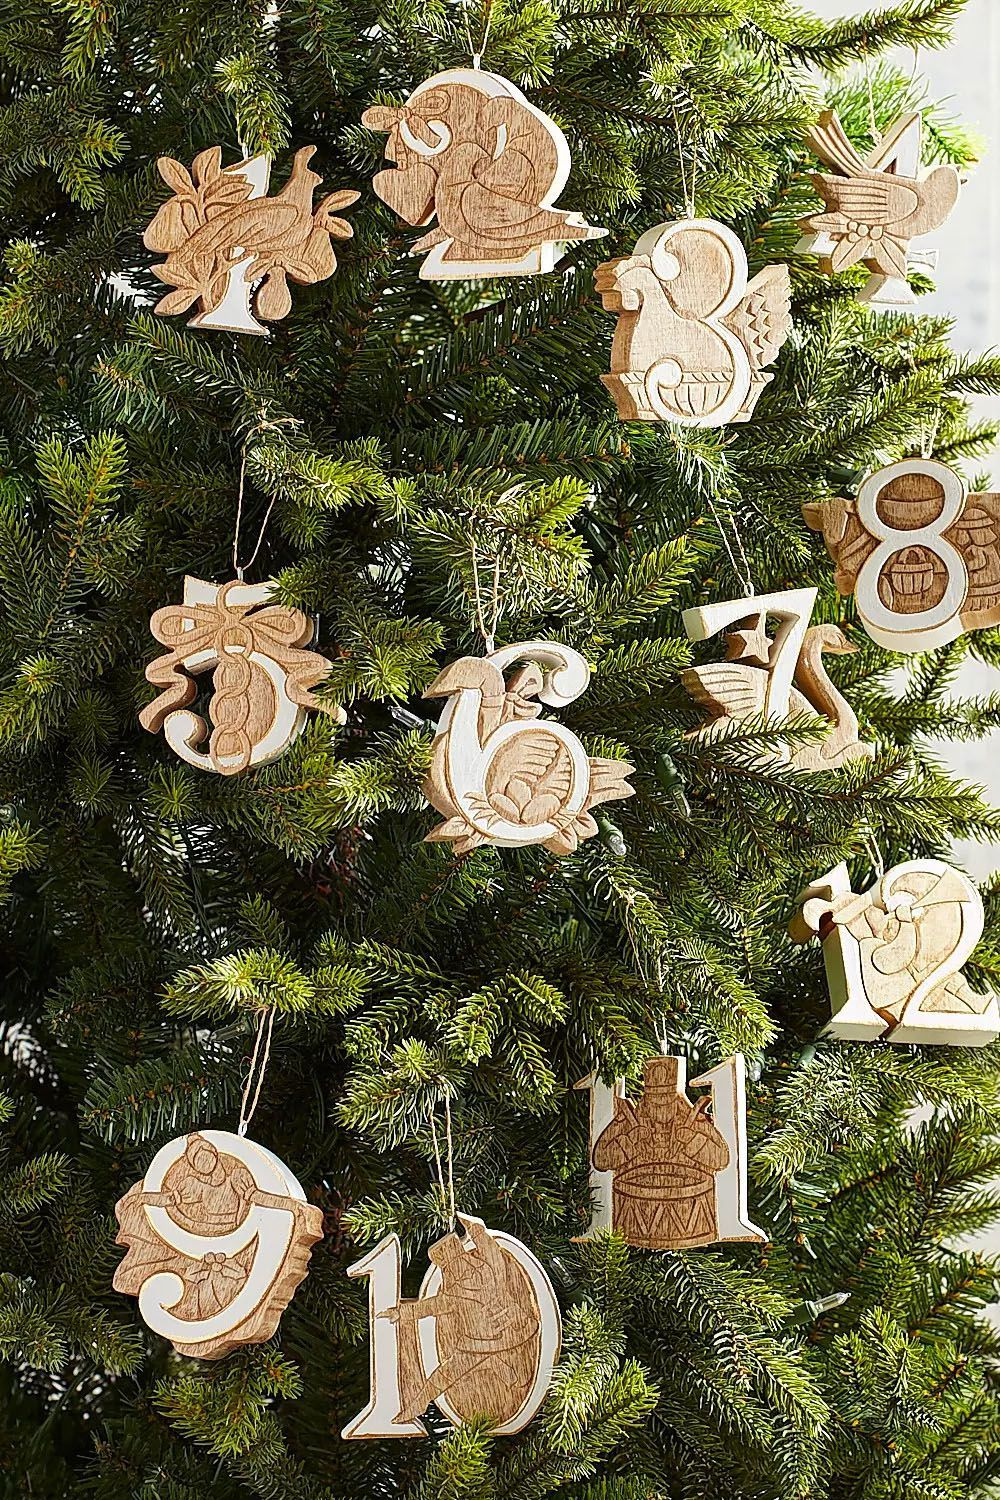 34 Unique Christmas Tree Decorations - 2018 Ideas for Decorating Your Christmas Tree